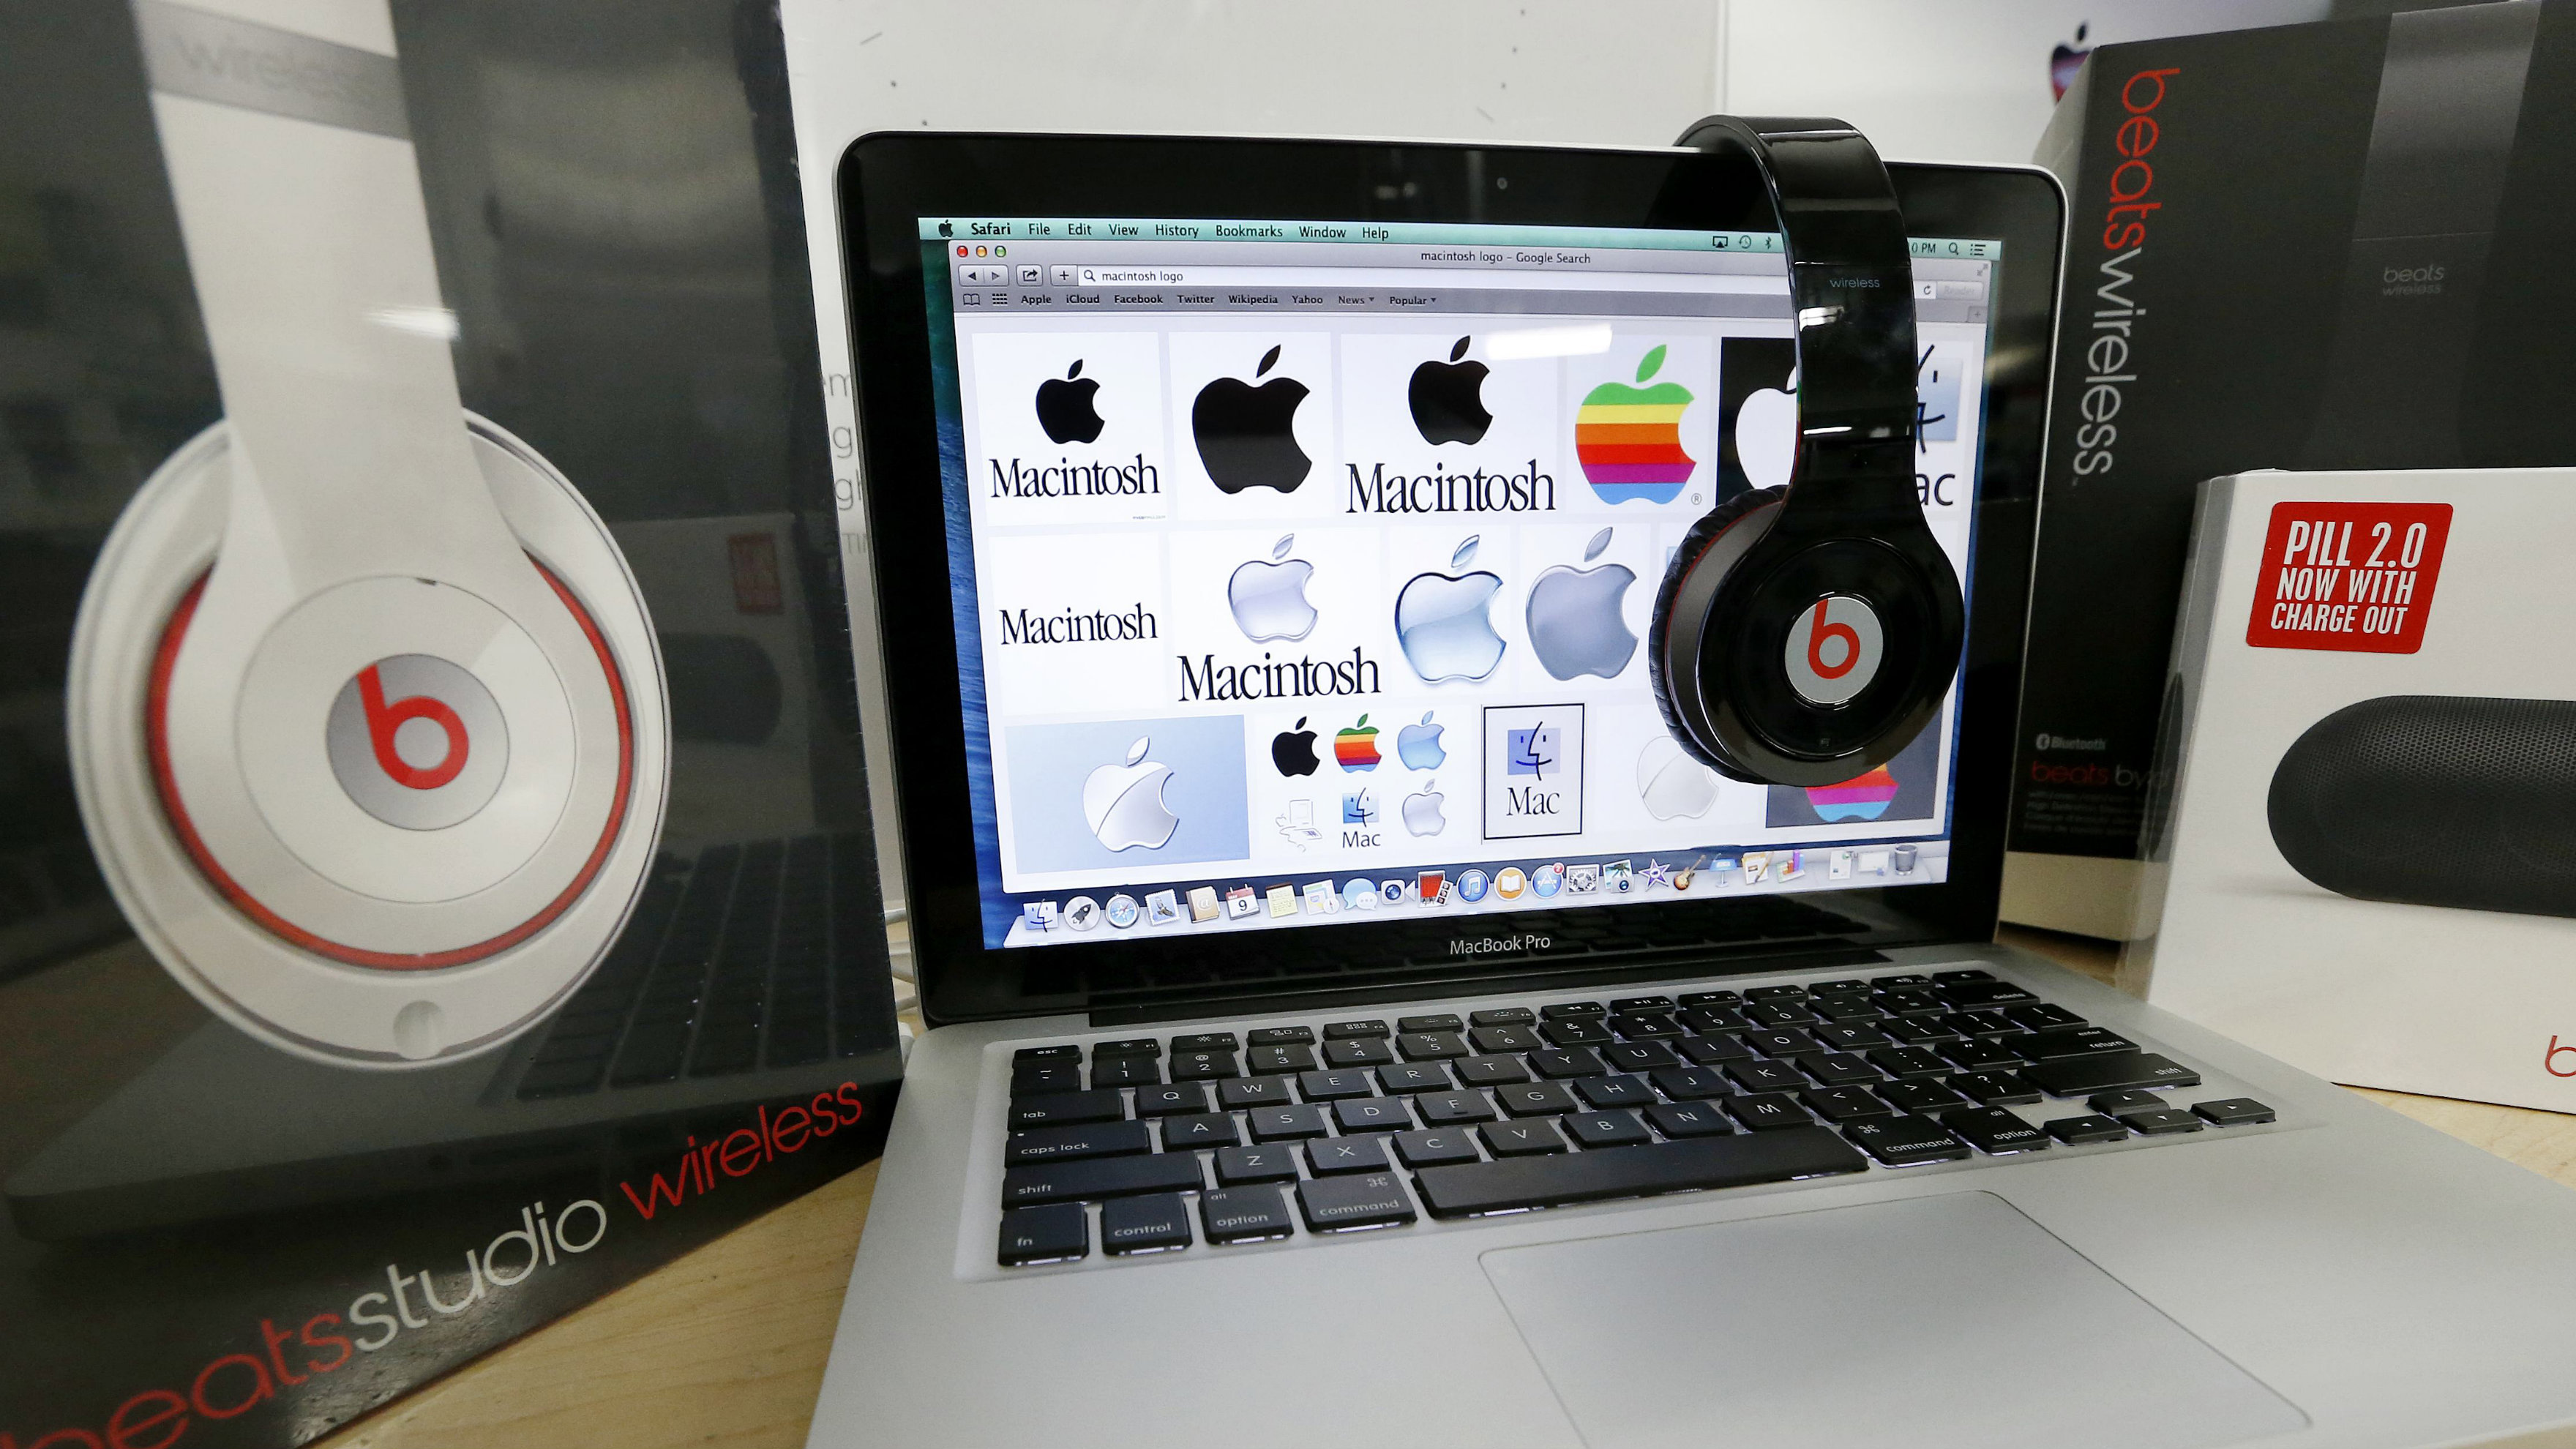 Beats Audio equipment is arranged for a photo next to an Apple laptop at Best Buy in Boston, Friday, May 9, 2014. Apple is orchestrating a $3.2 billion acquisition of Beats Electronics, the headphone maker and music streaming distributor founded by hip-hop star Dr. Dre and record producer Jimmy Iovine, according to a Financial Times report published late Thursday, May 8, 2014.